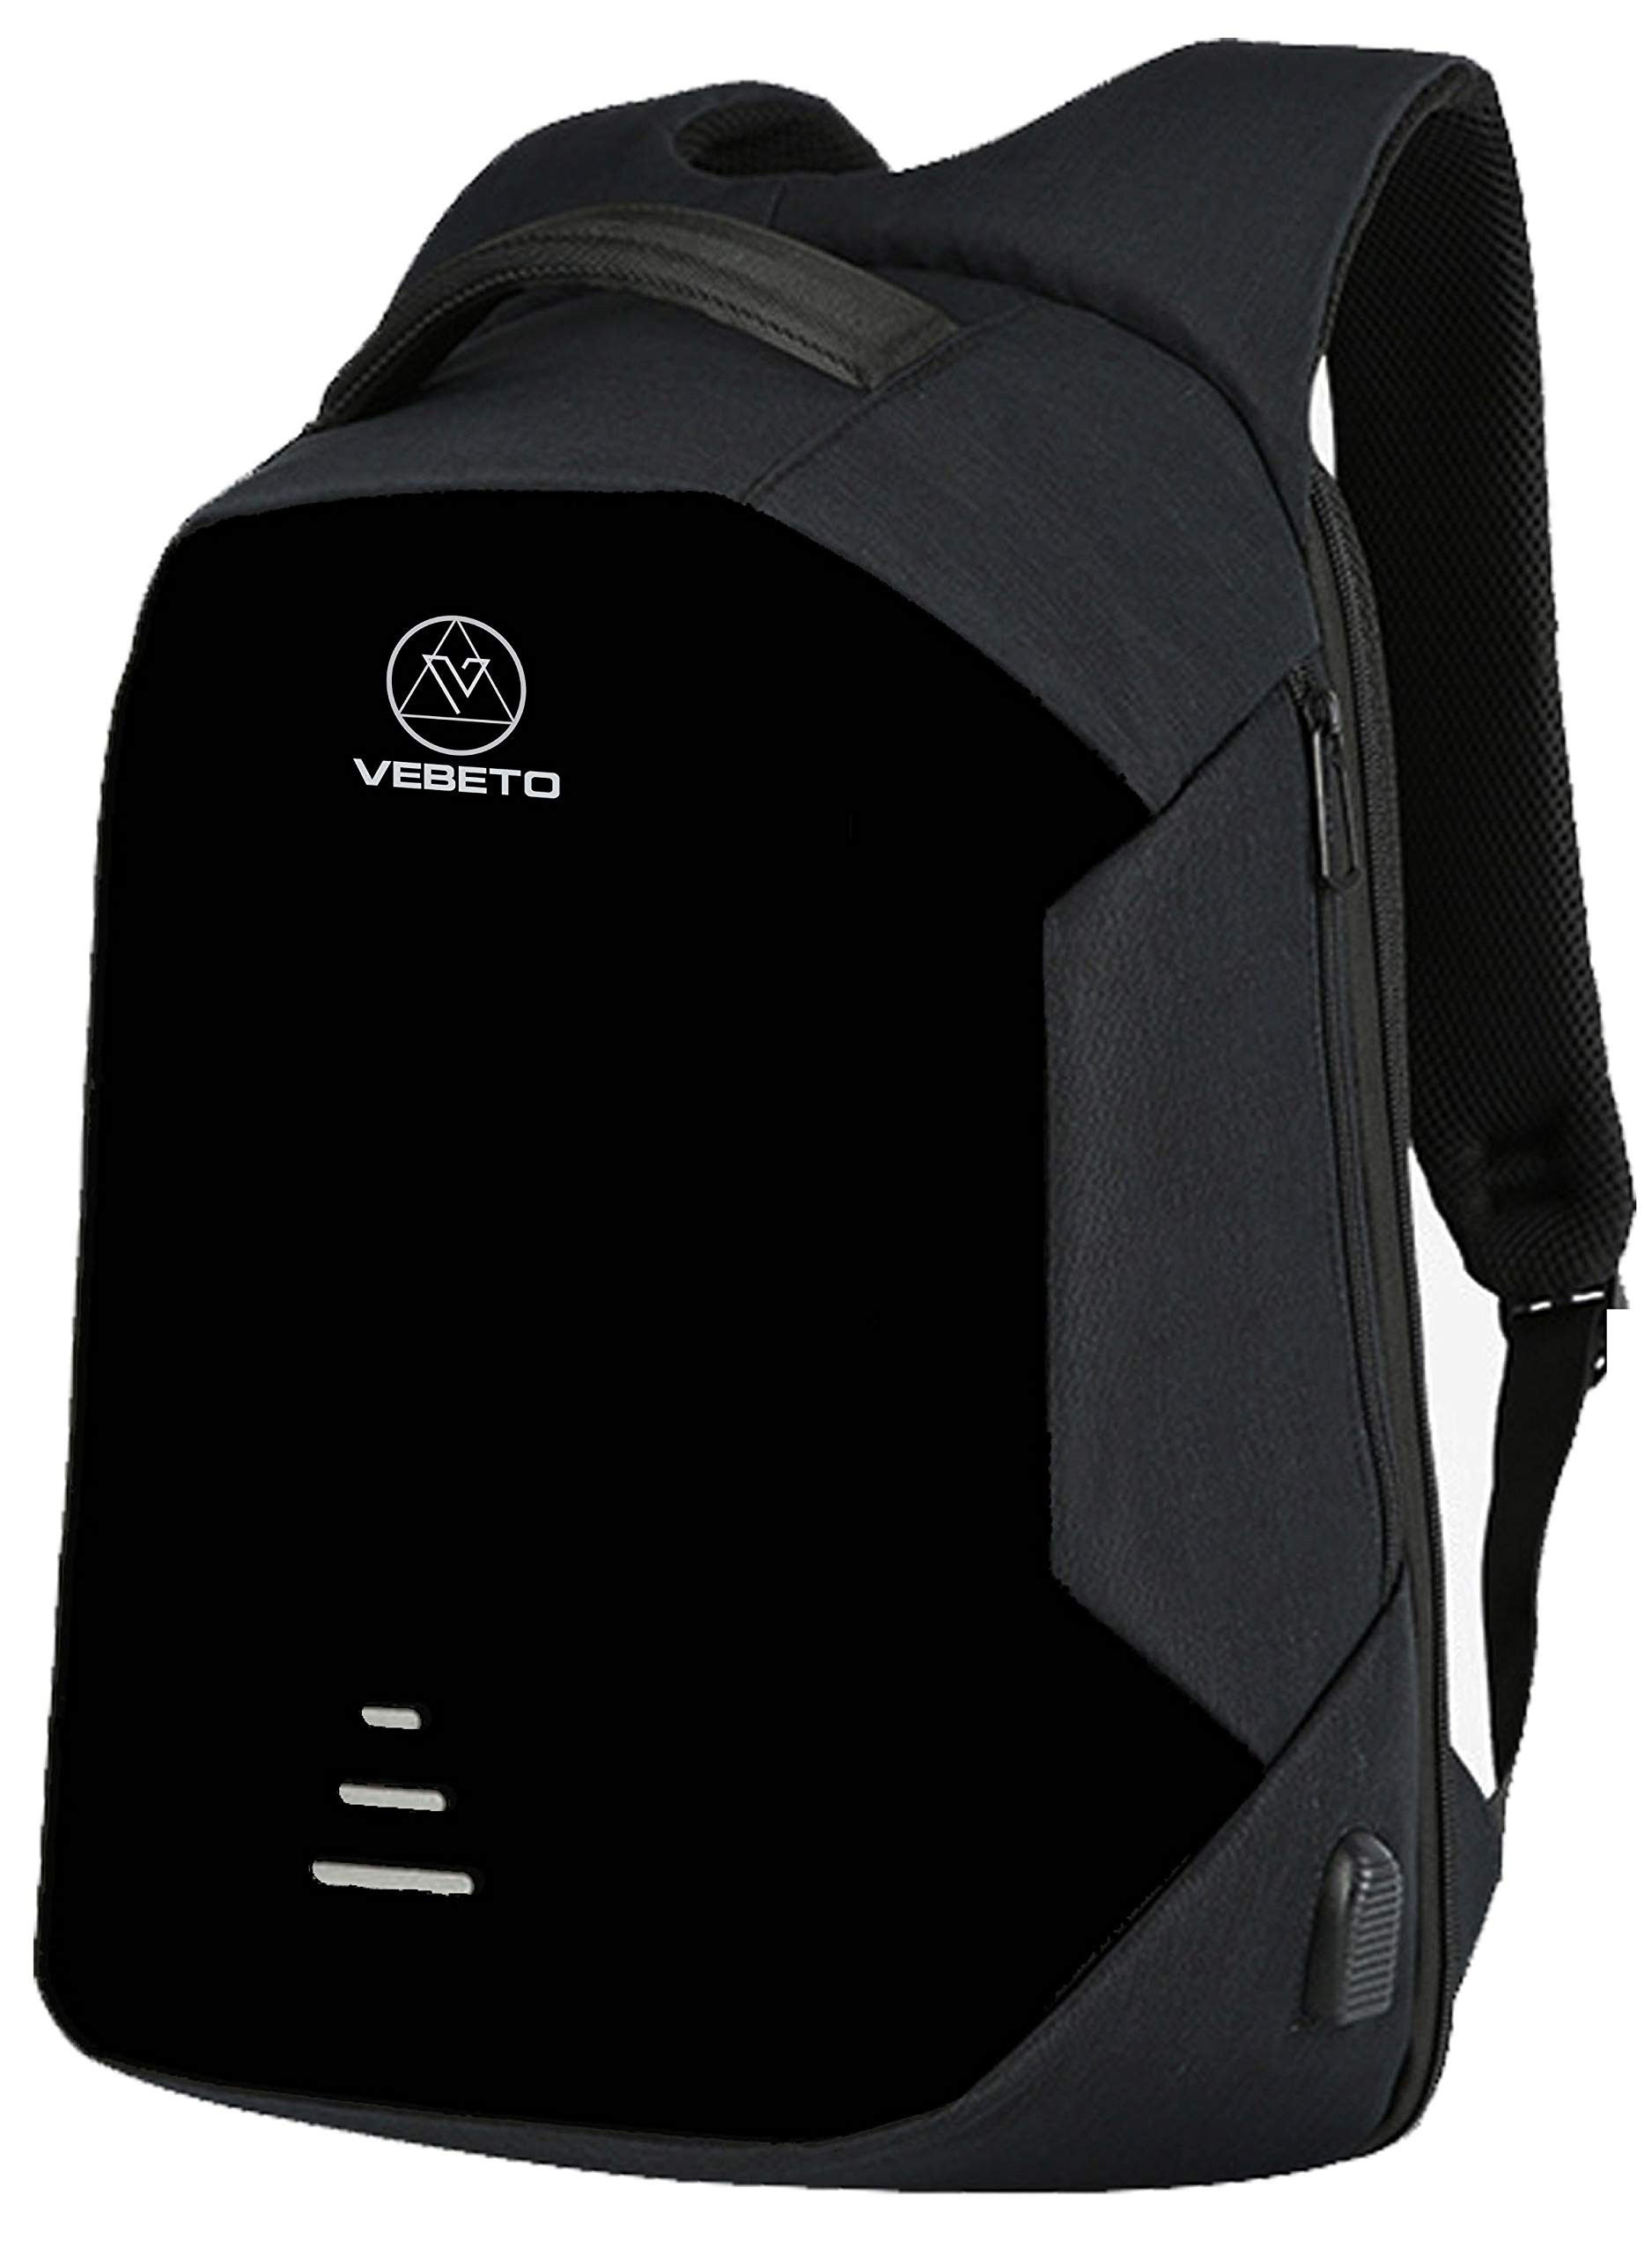 Vebeto Anti Theft Backpack with USB Charging Port 15.6 Inch Laptop Bagpack Waterproof Casual Unisex Bag for School College Office Suitable for Men Women (Black) product image